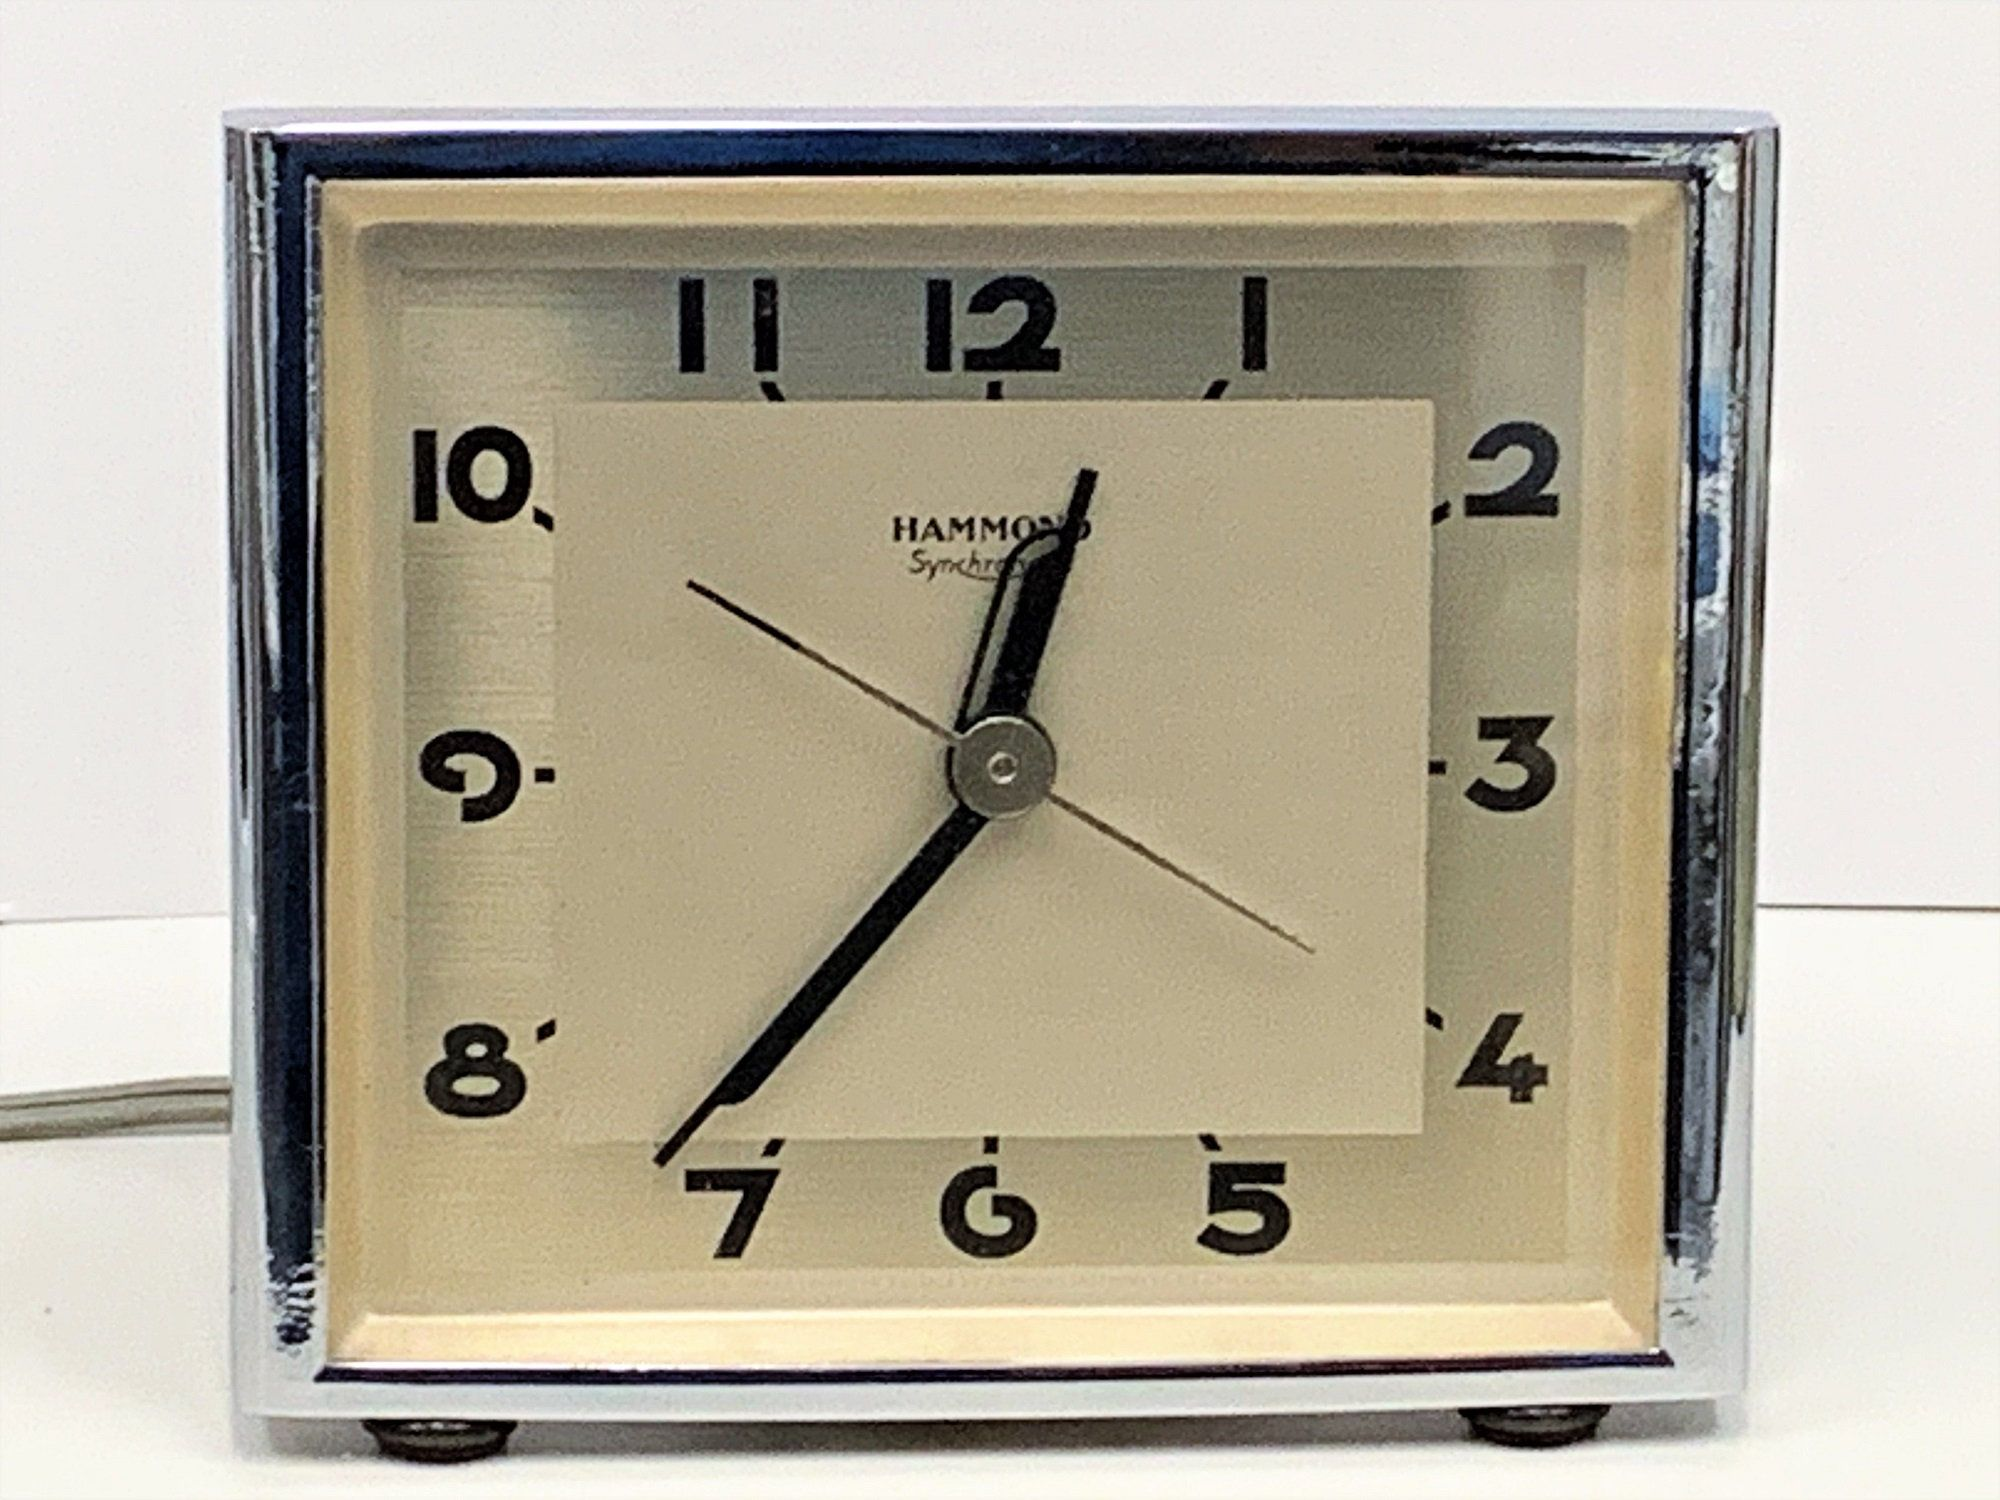 Antique Hammond Synchoronous Electric Alarm Clock Era 1930 S Collectible Rare 87 Years Old Clock Great Precision 5 25 X 4 5 11 With Images Old Clocks Clock Antiques